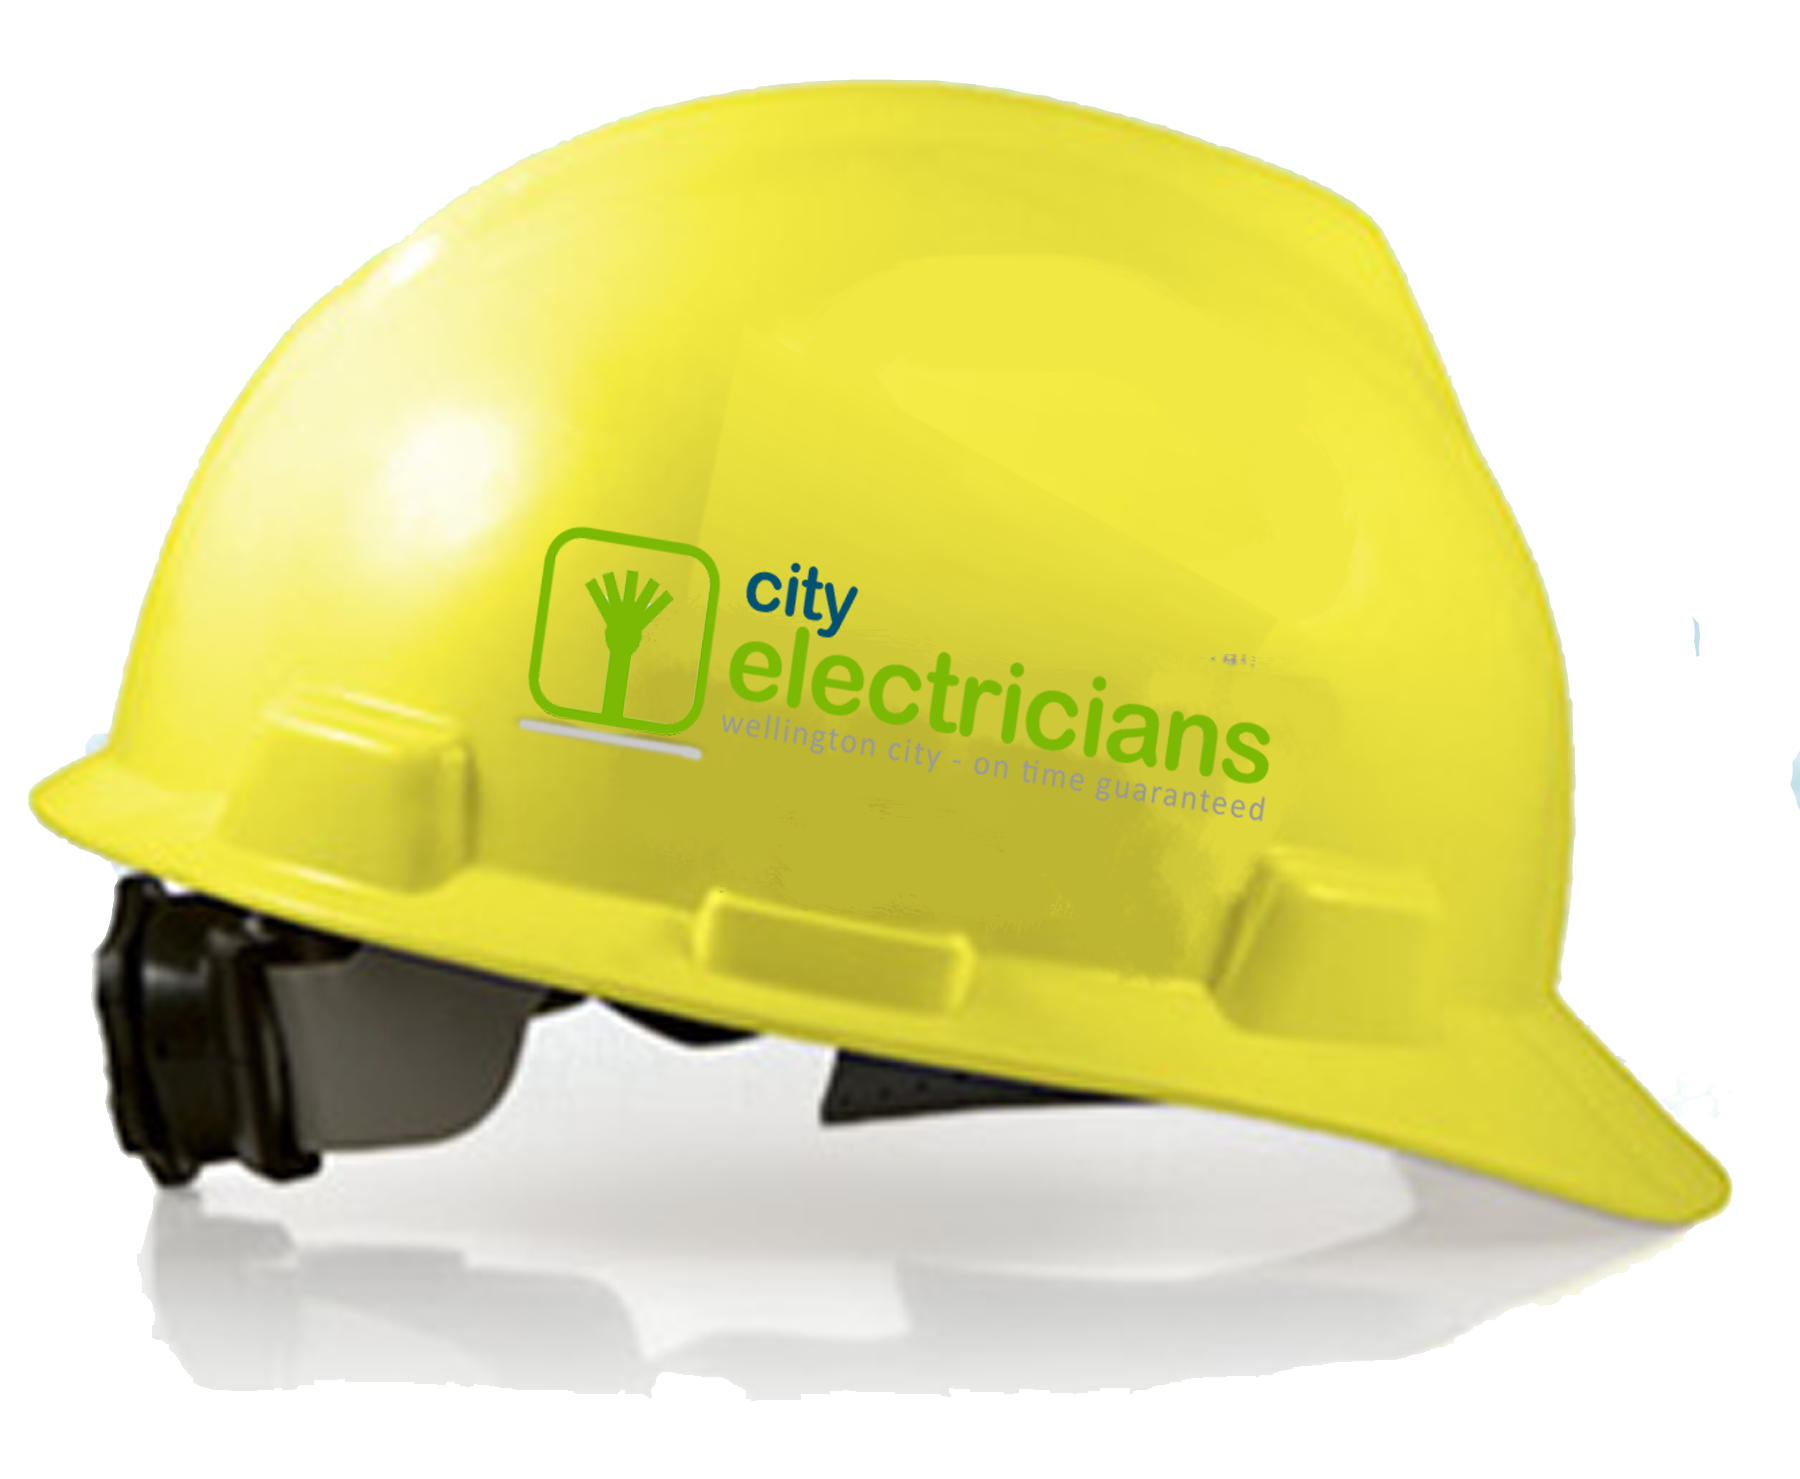 City Electricians Business & Commercial